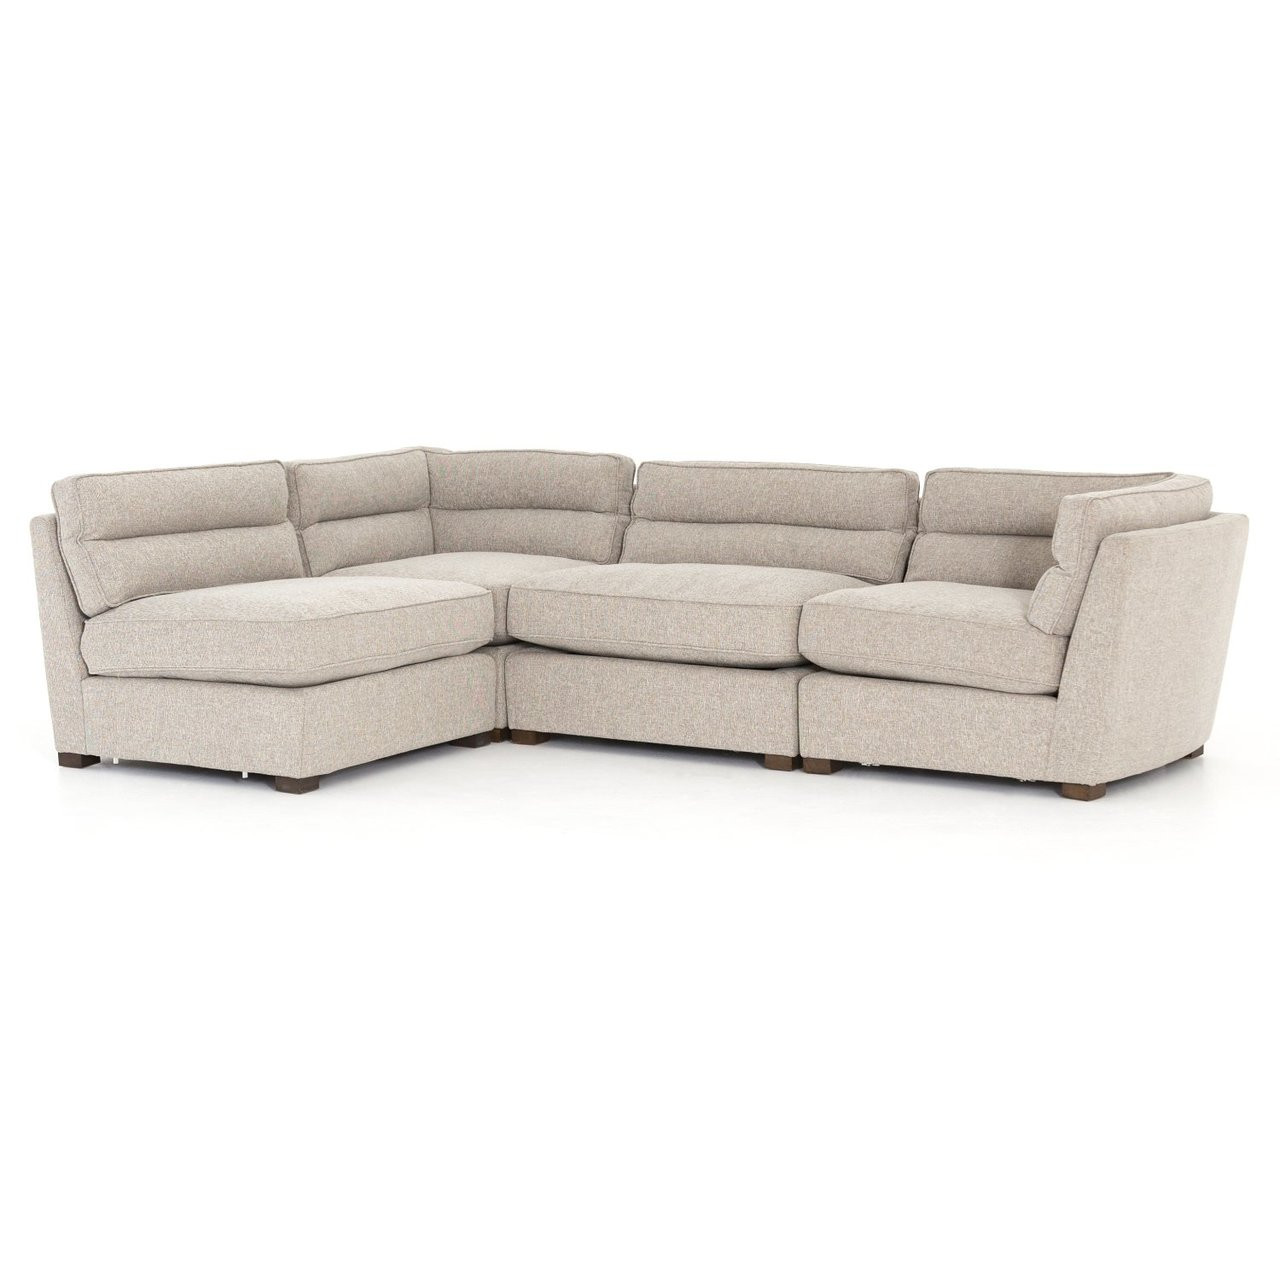 Connell Channel Back 4 Pc Modular Sectional Sofa